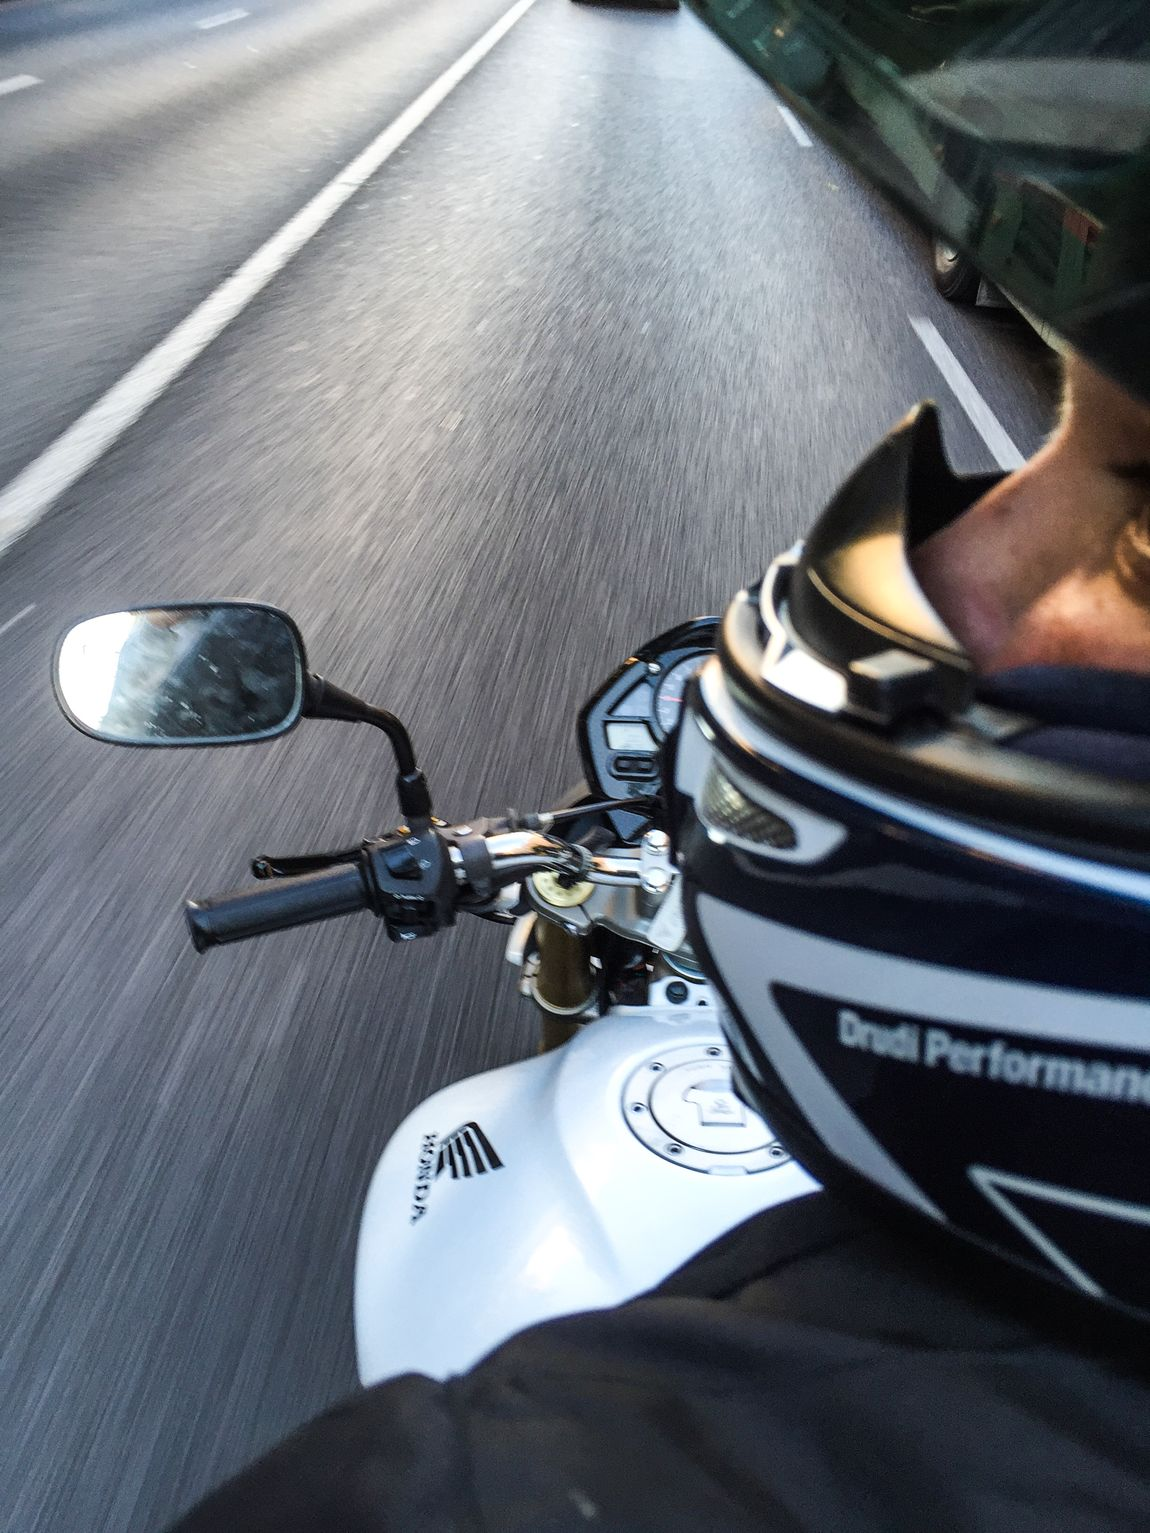 Bike Bikers Motorcycles Honda On The Road Relaxing Driving Were Is The Limit I Love My Motorbike❤ Riding My Motorcycle